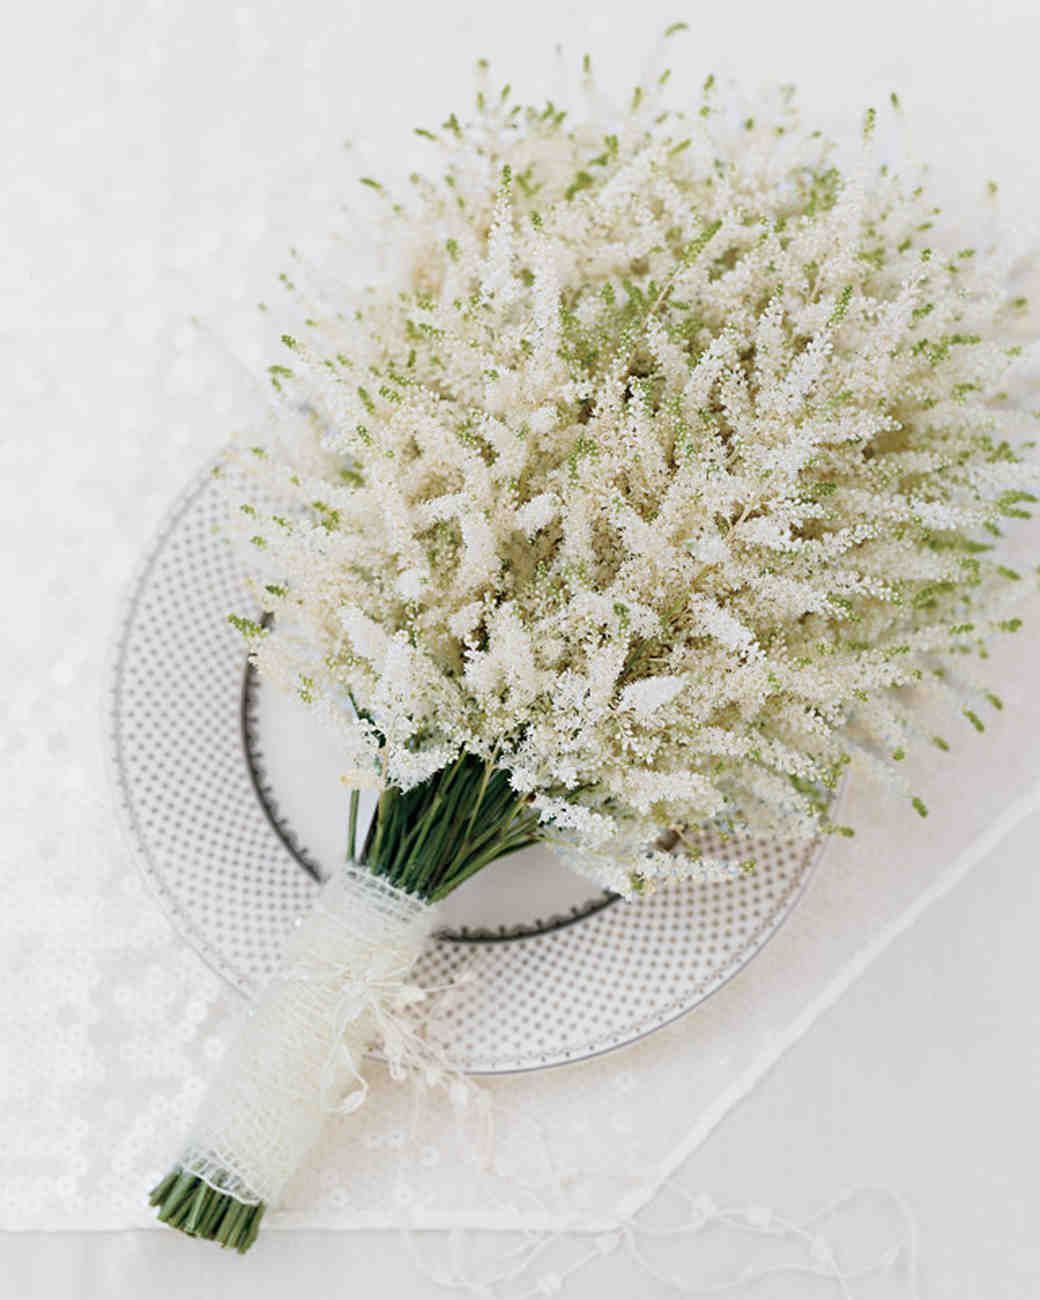 Browse seasonal bouquet options in various colors and blooms